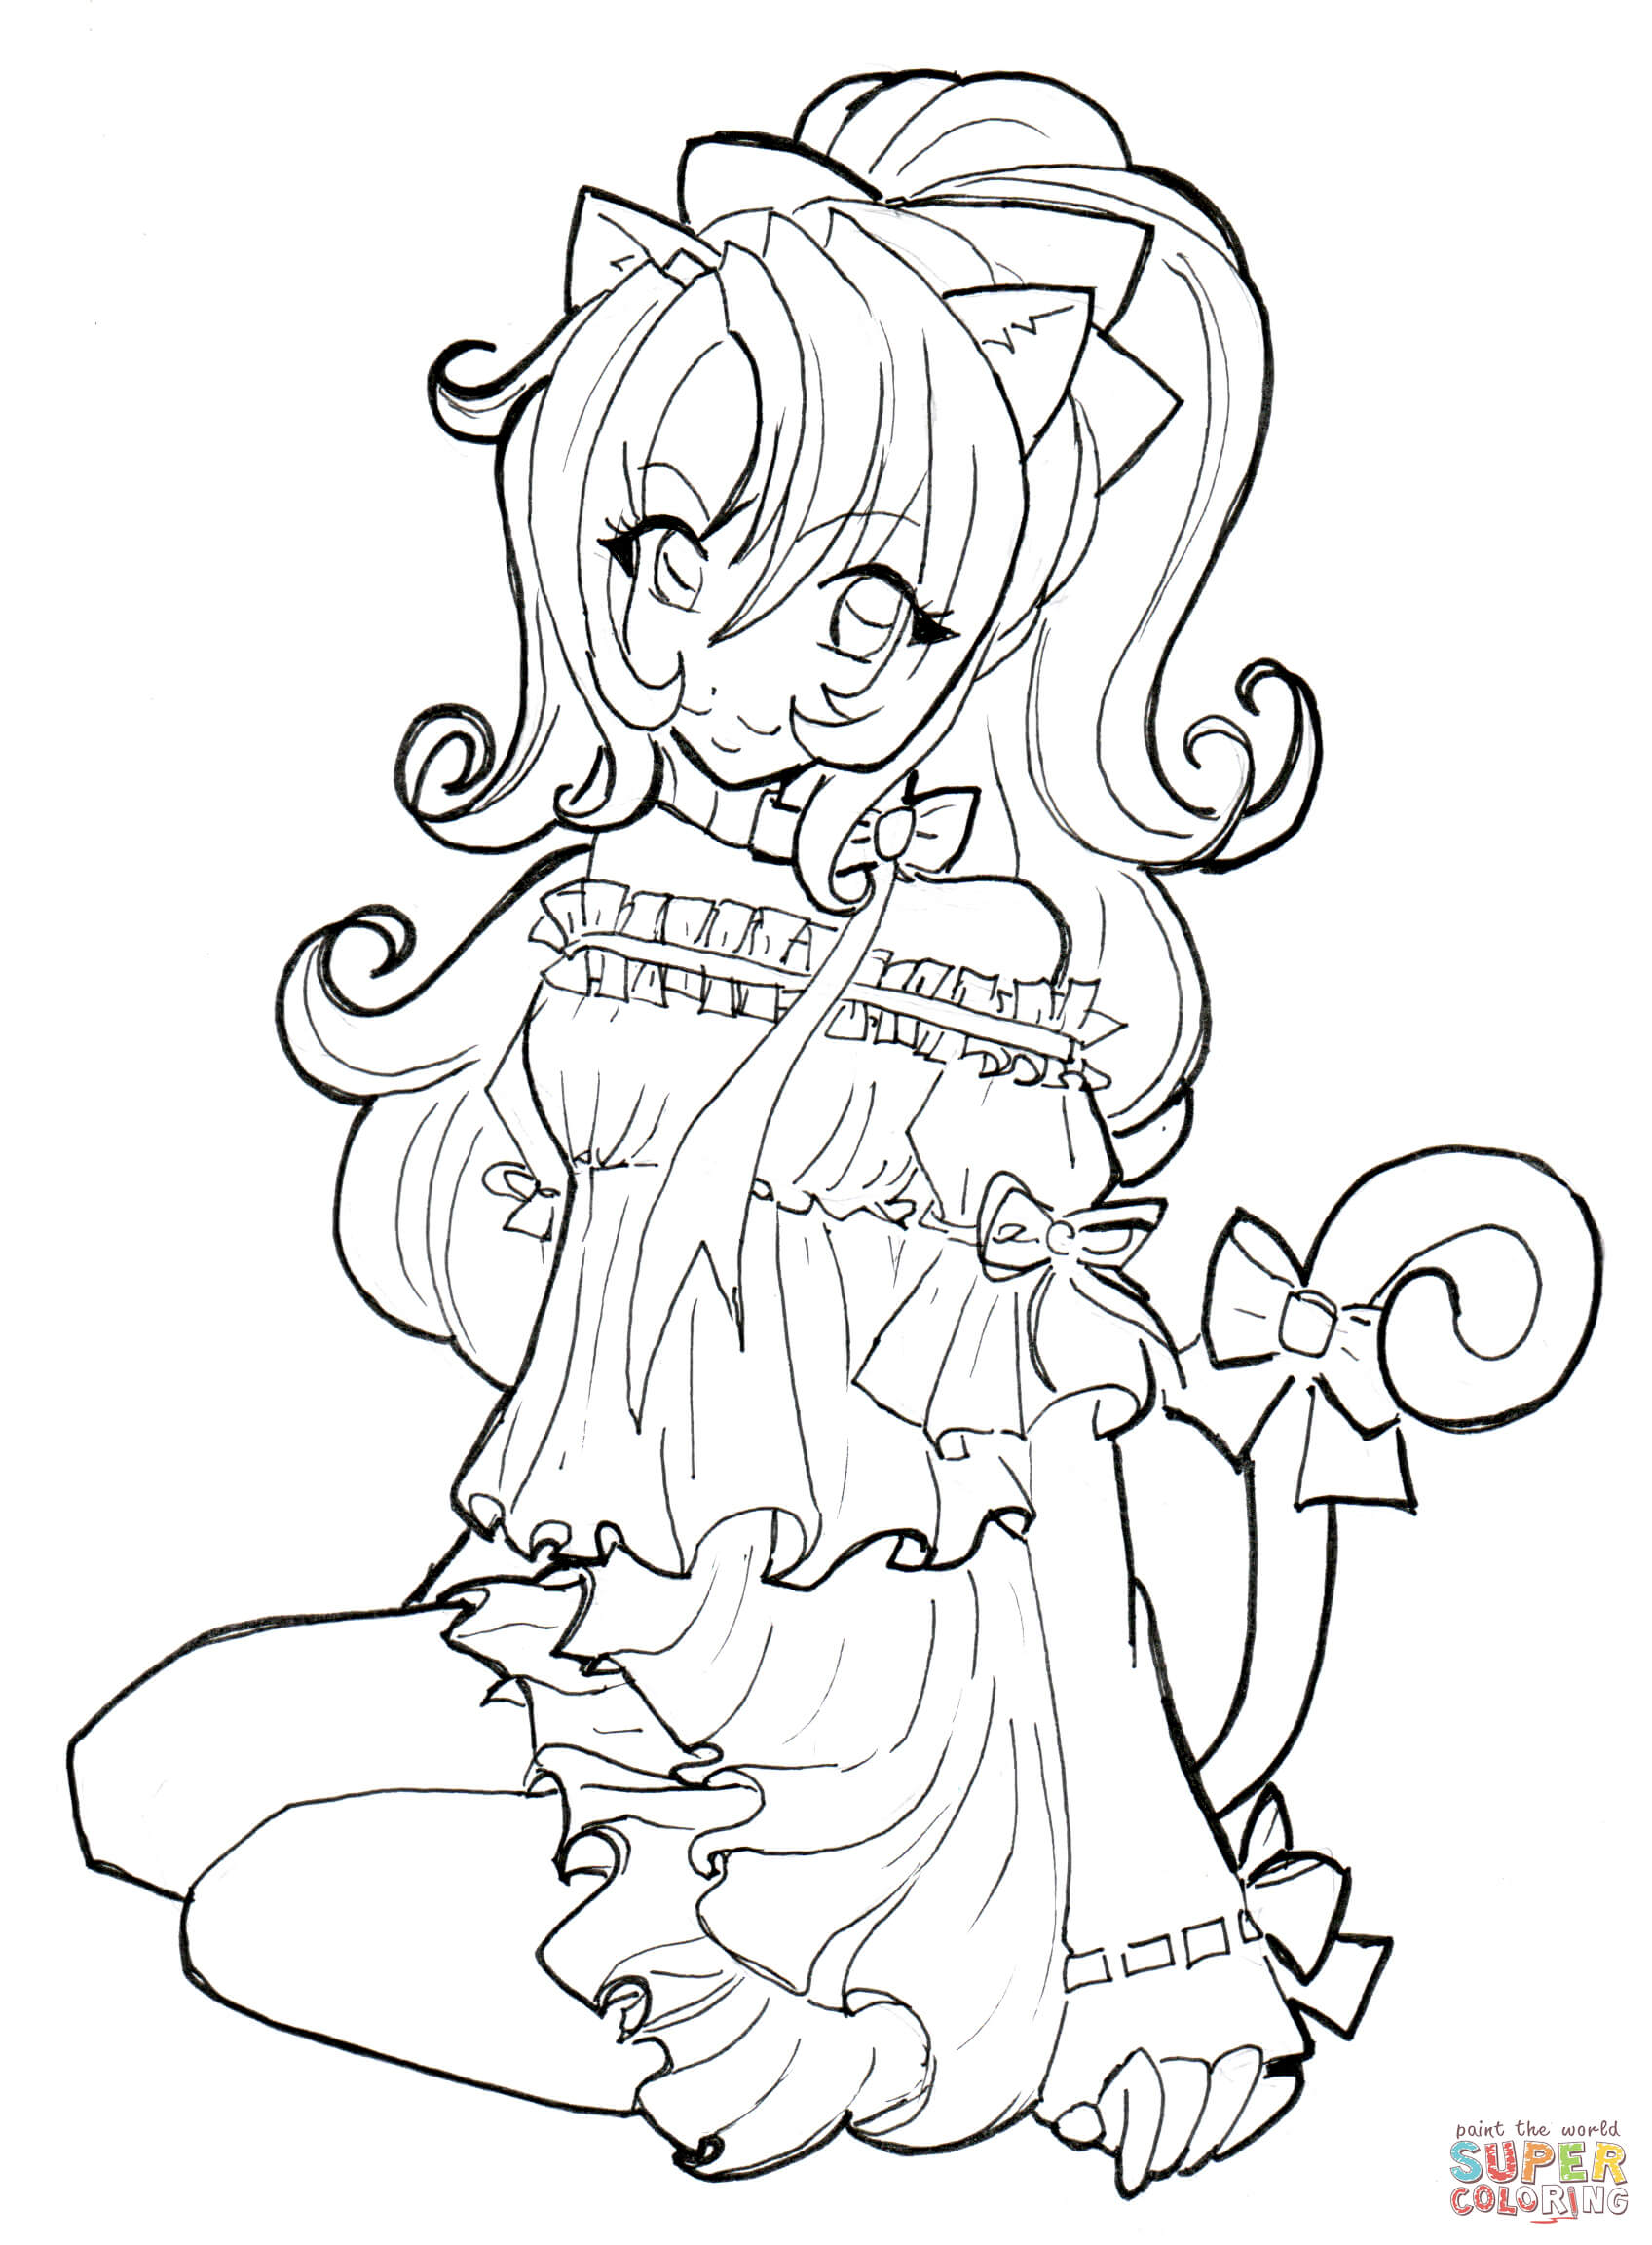 Coloring pages ultraman - Cat Girl Coloring Page Resize 1696 2c2305 Anime Cat Girl Coloring Page Color